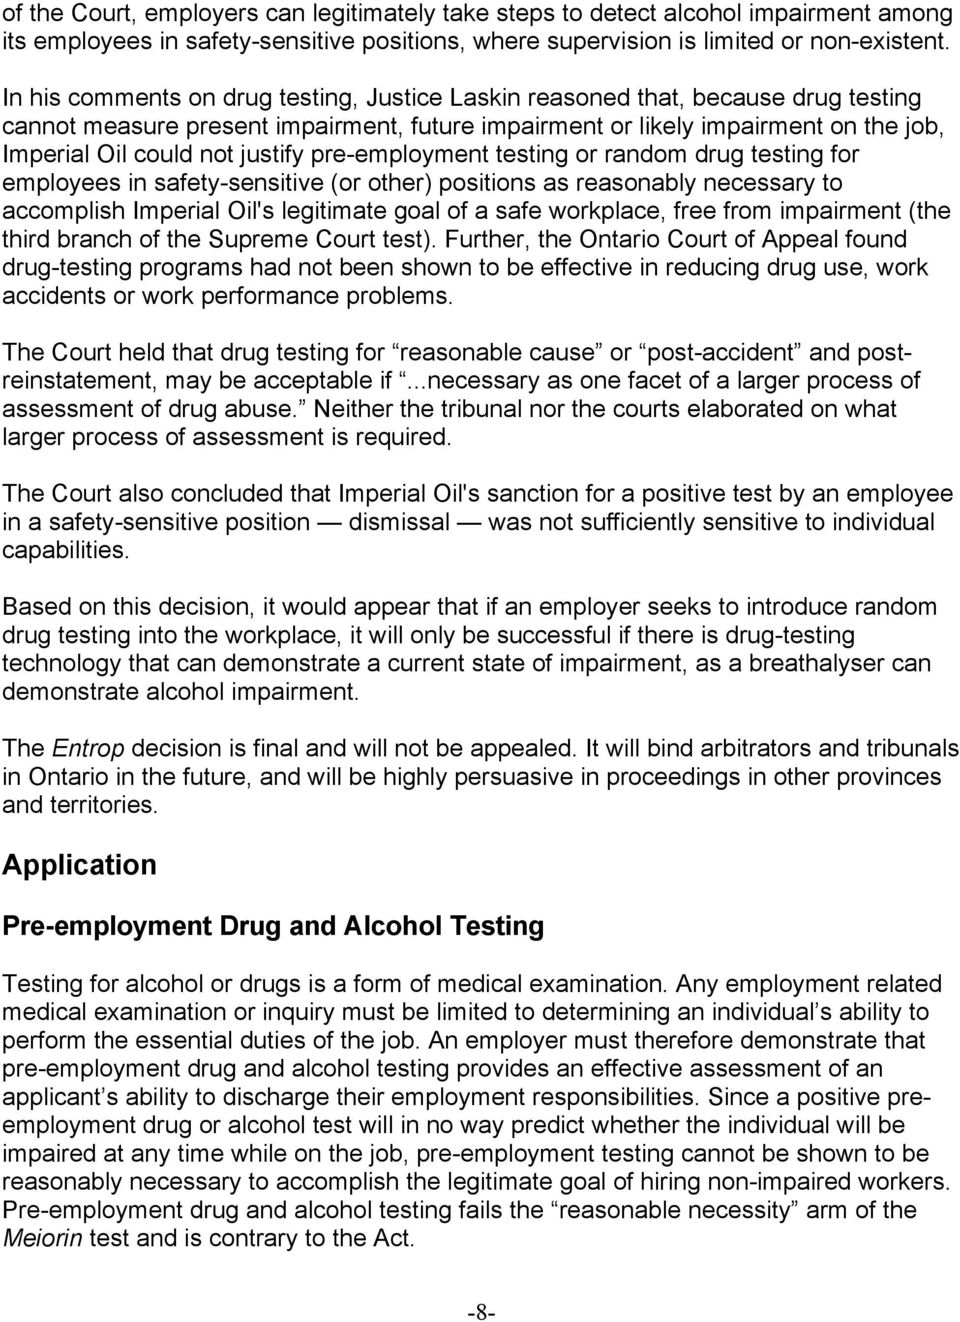 justify pre-employment testing or random drug testing for employees in safety-sensitive (or other) positions as reasonably necessary to accomplish Imperial Oil's legitimate goal of a safe workplace,